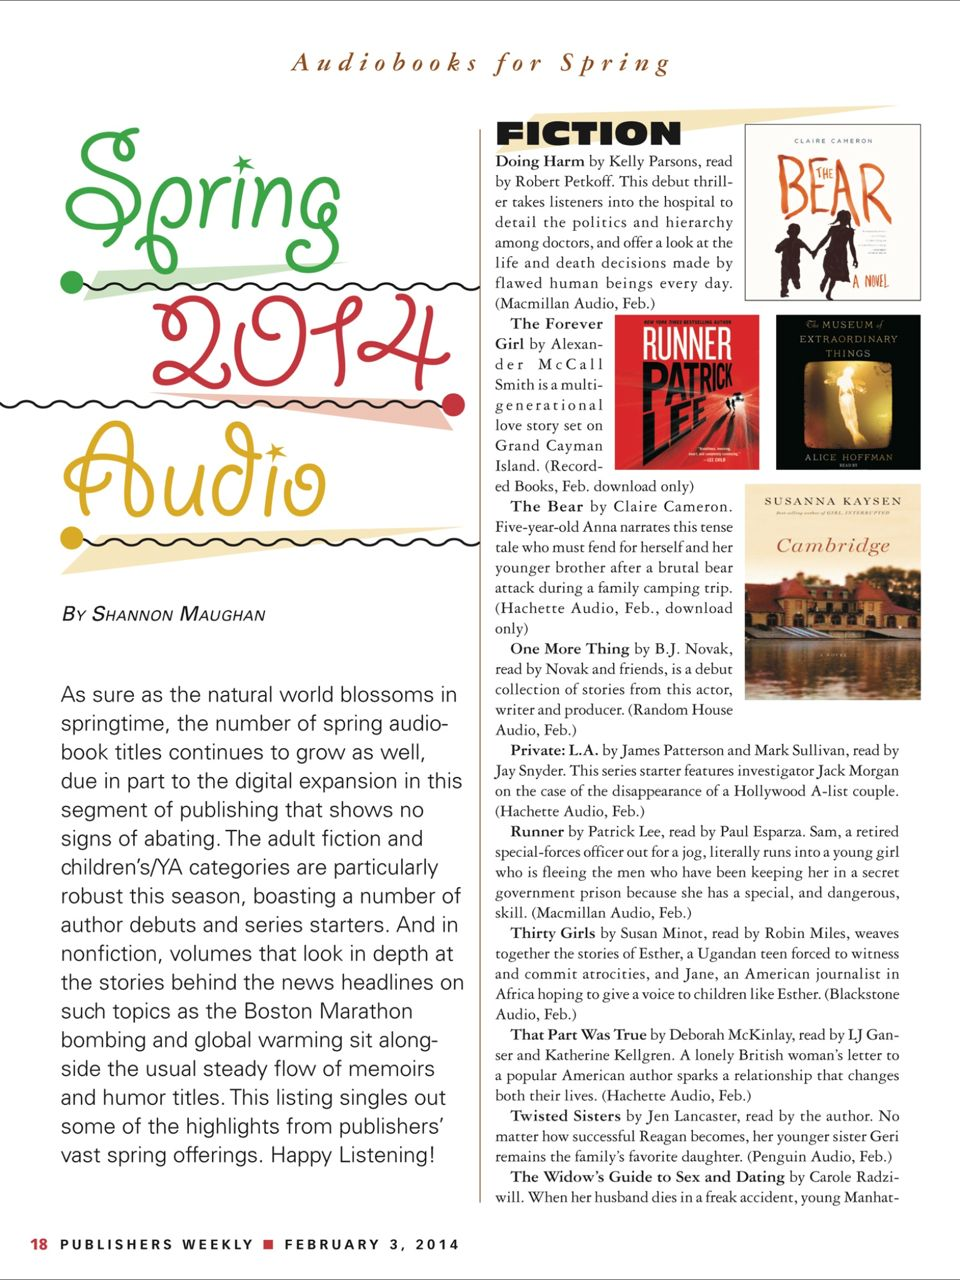 the-bear-audio-book-publishers-weekly